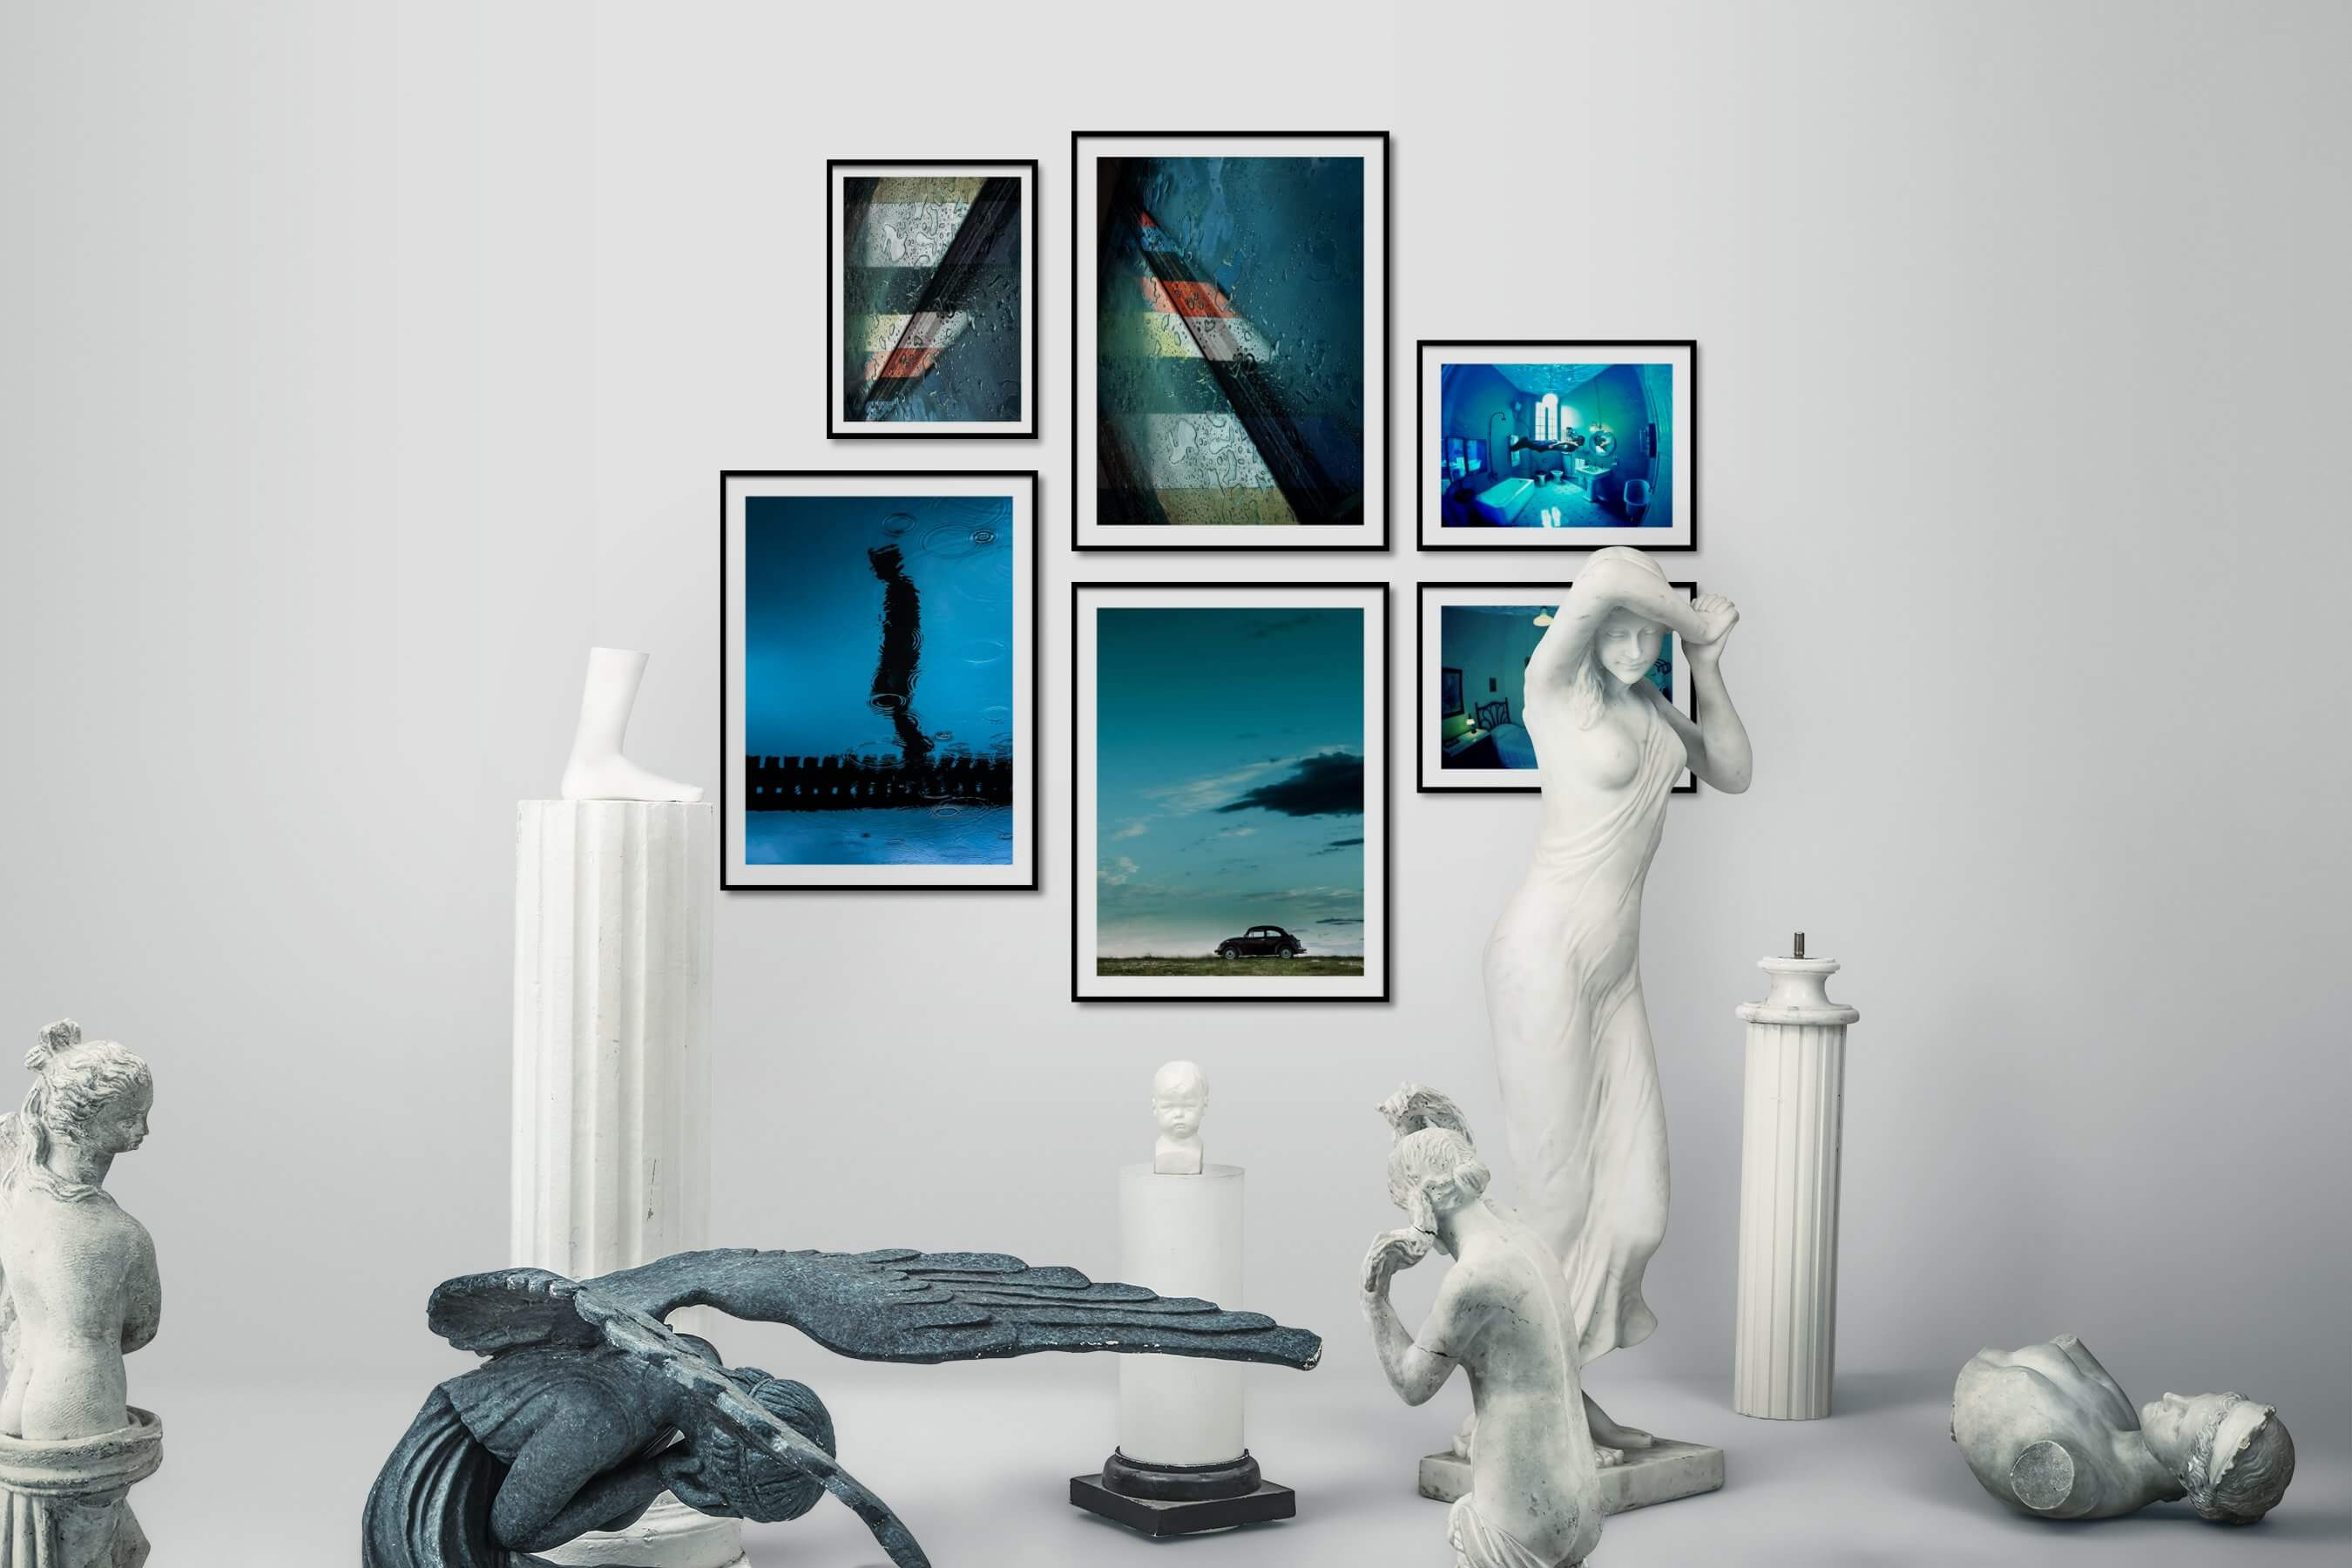 Gallery wall idea with six framed pictures arranged on a wall depicting For the Moderate, City Life, For the Minimalist, Beach & Water, Country Life, Vintage, and Artsy